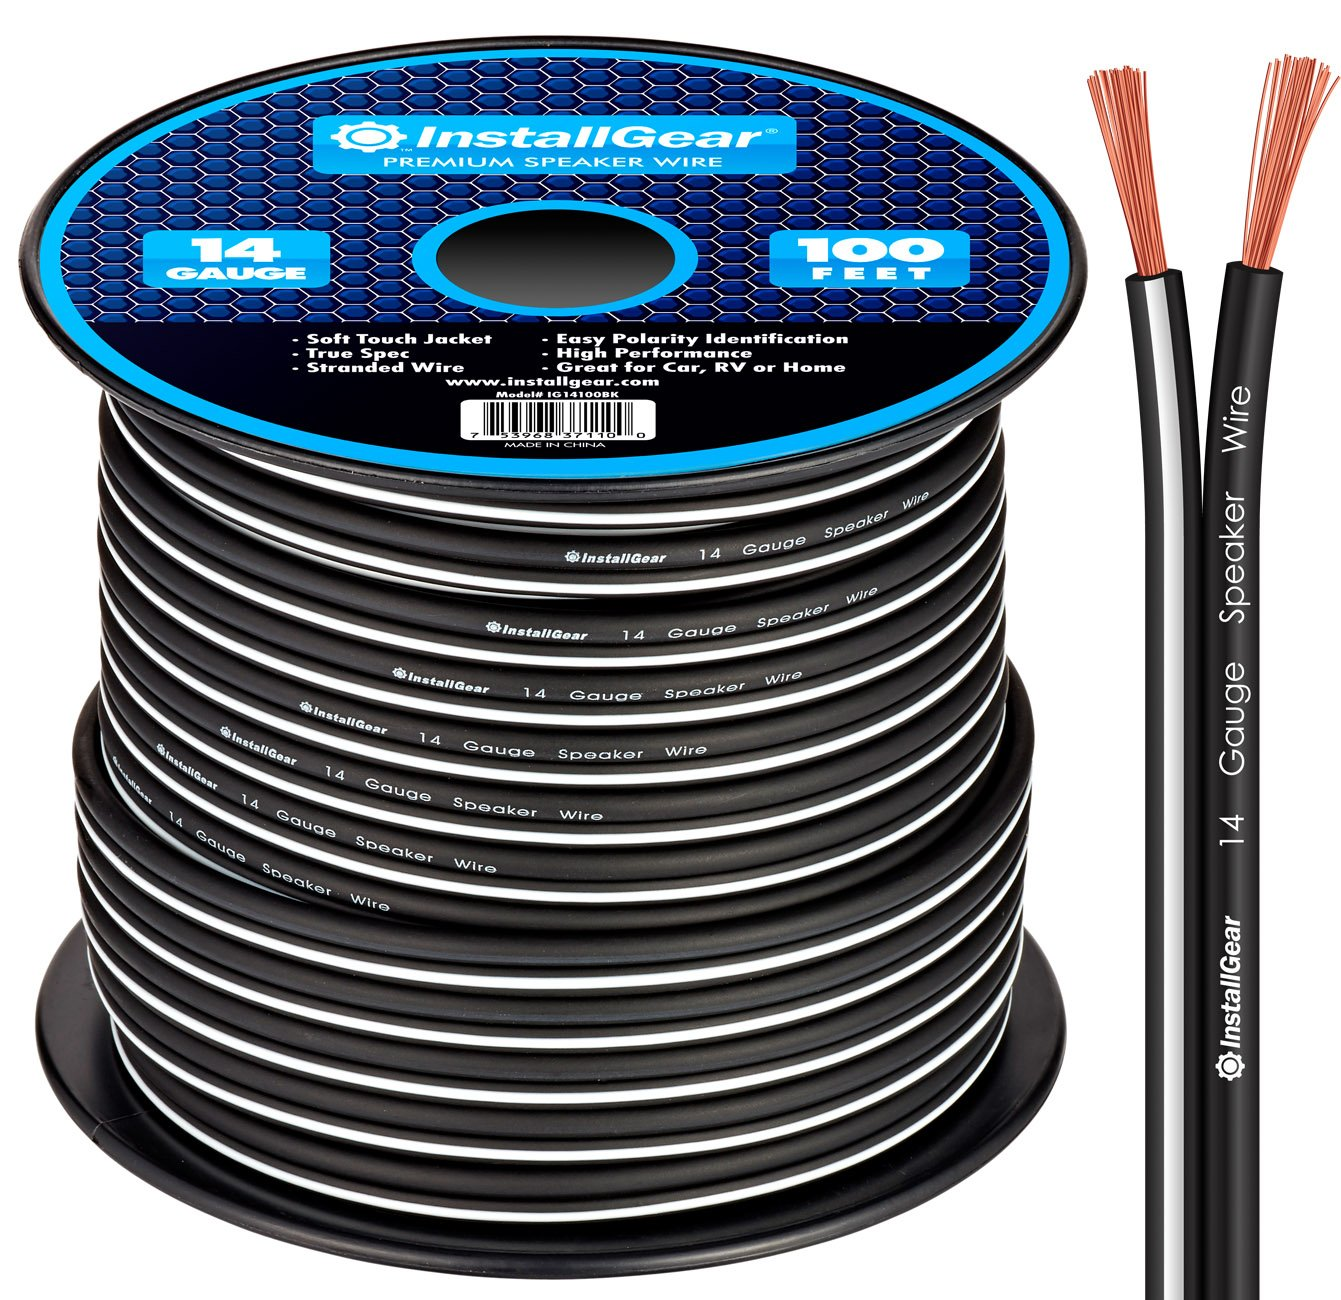 InstallGear 14 Gauge AWG 100ft Speaker Wire Cable - Black by InstallGear